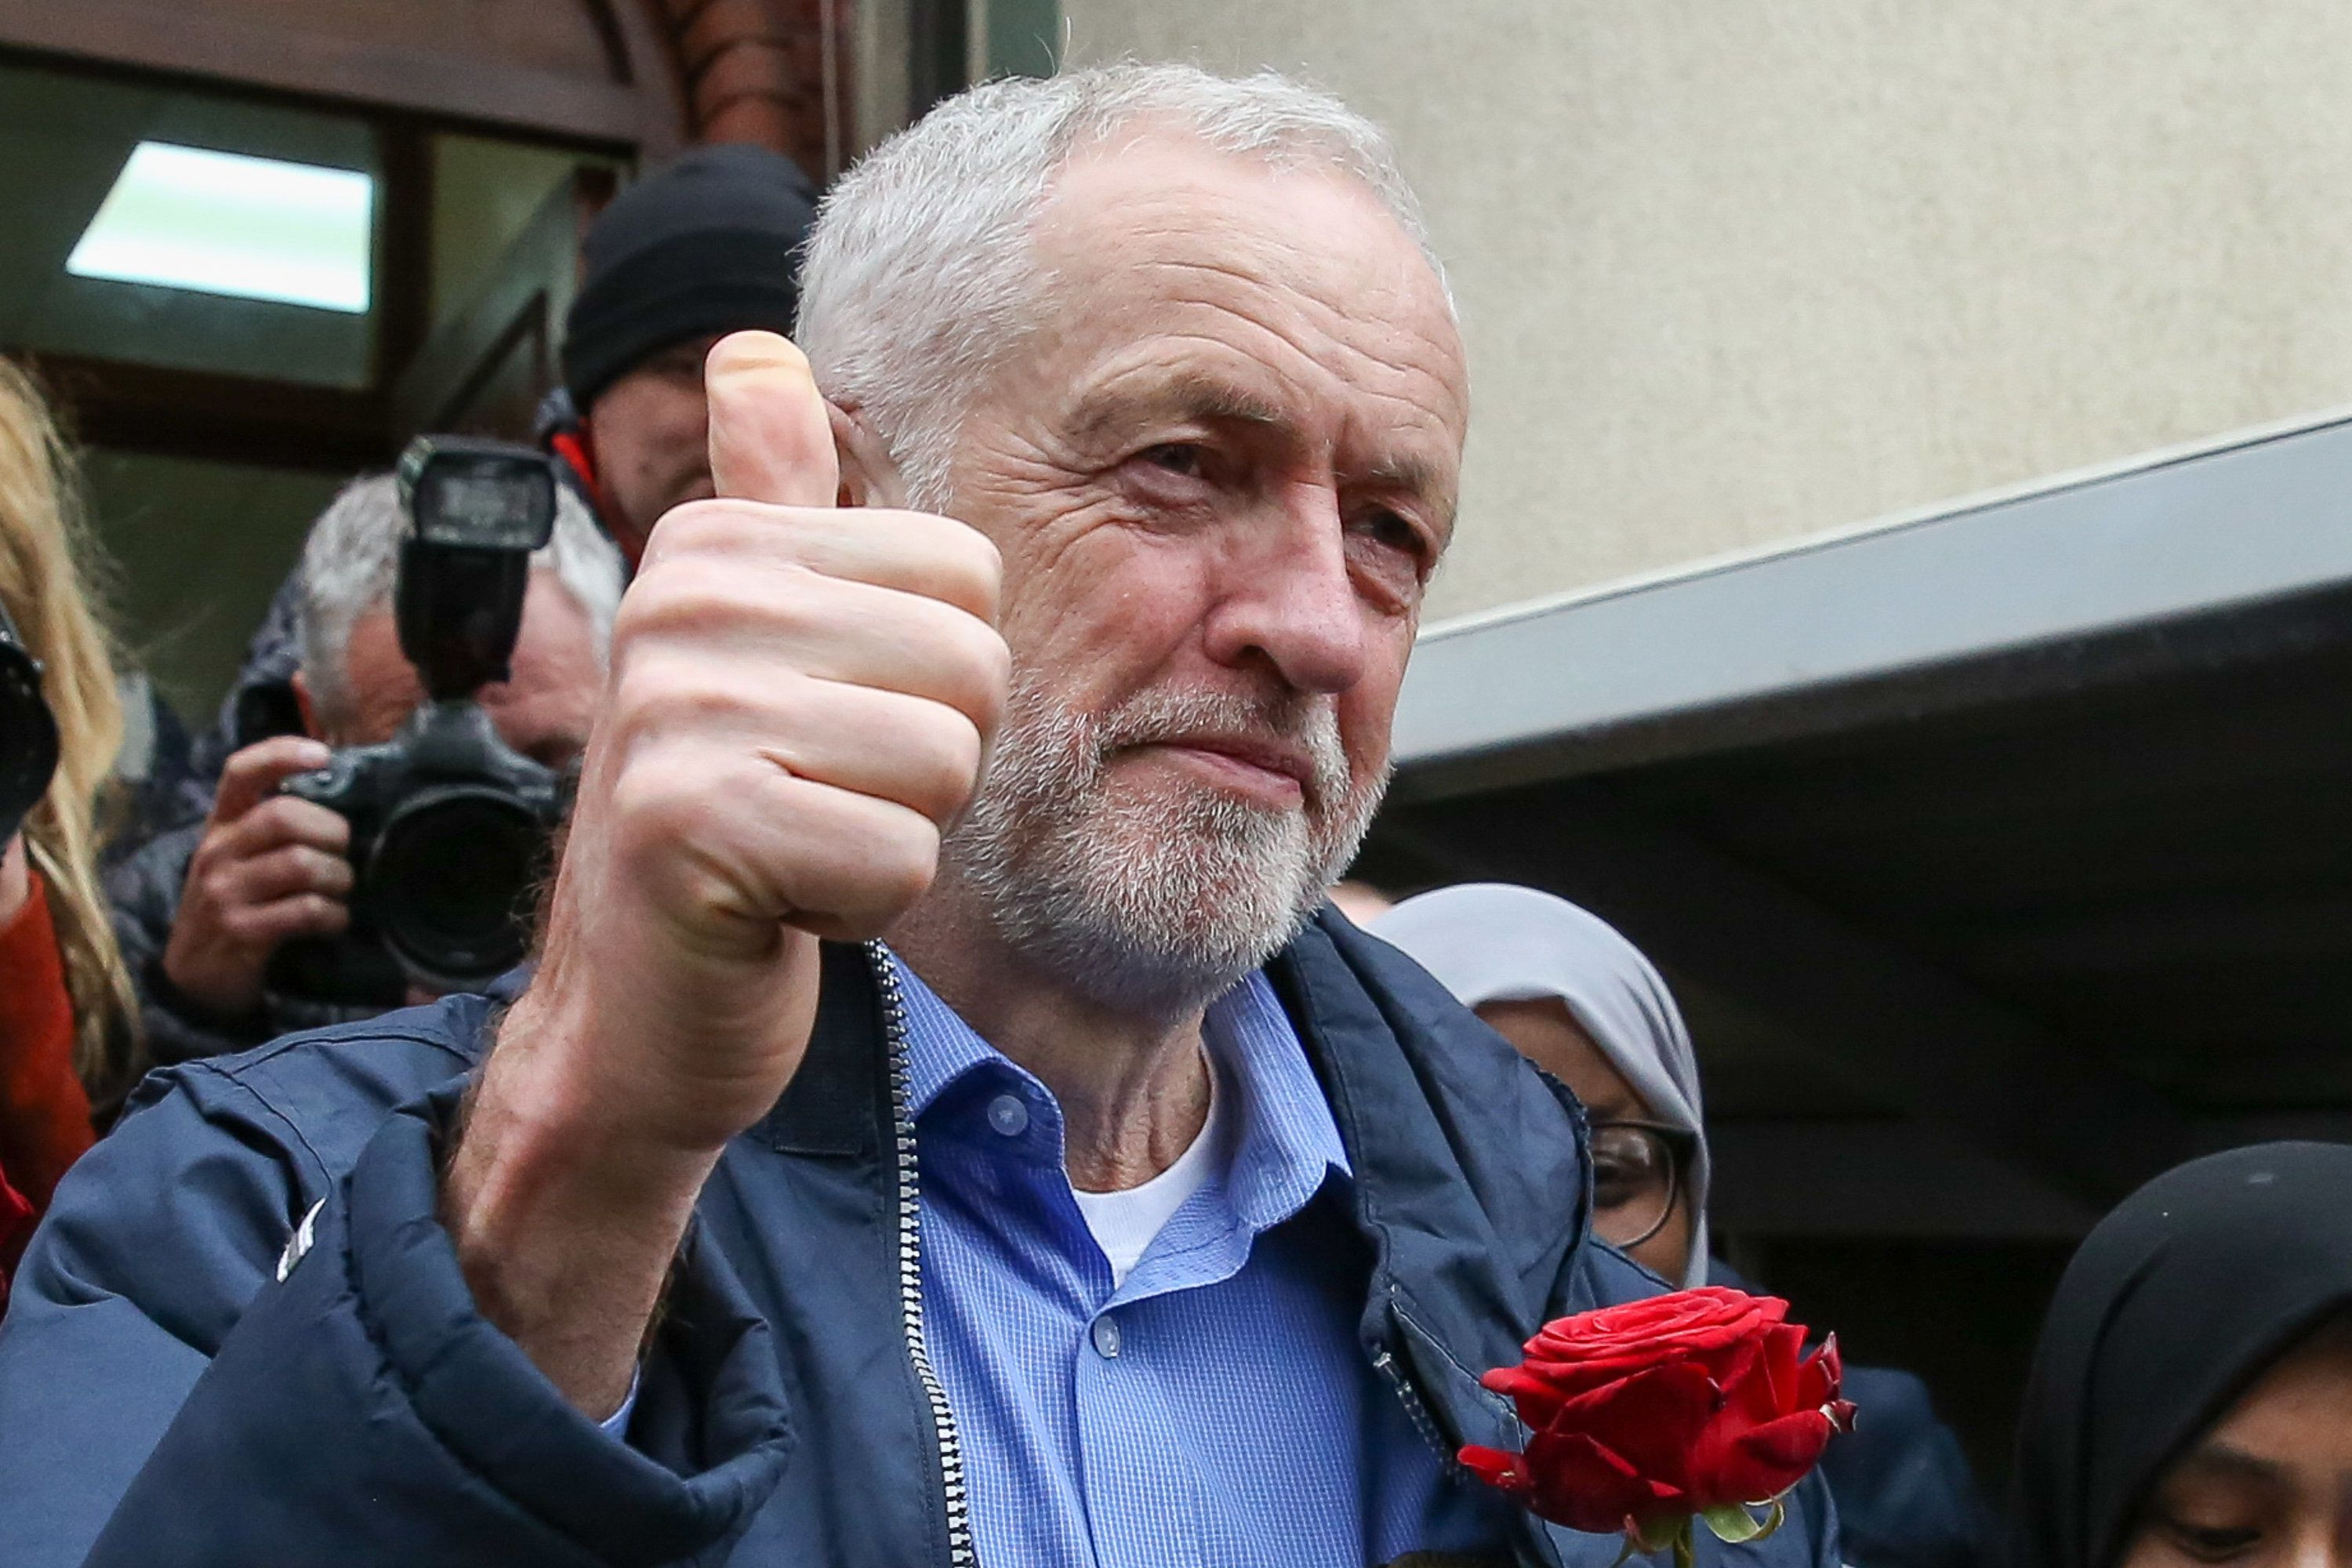 Jeremy Corbyn egged as he visits Finsbury Park Mosque